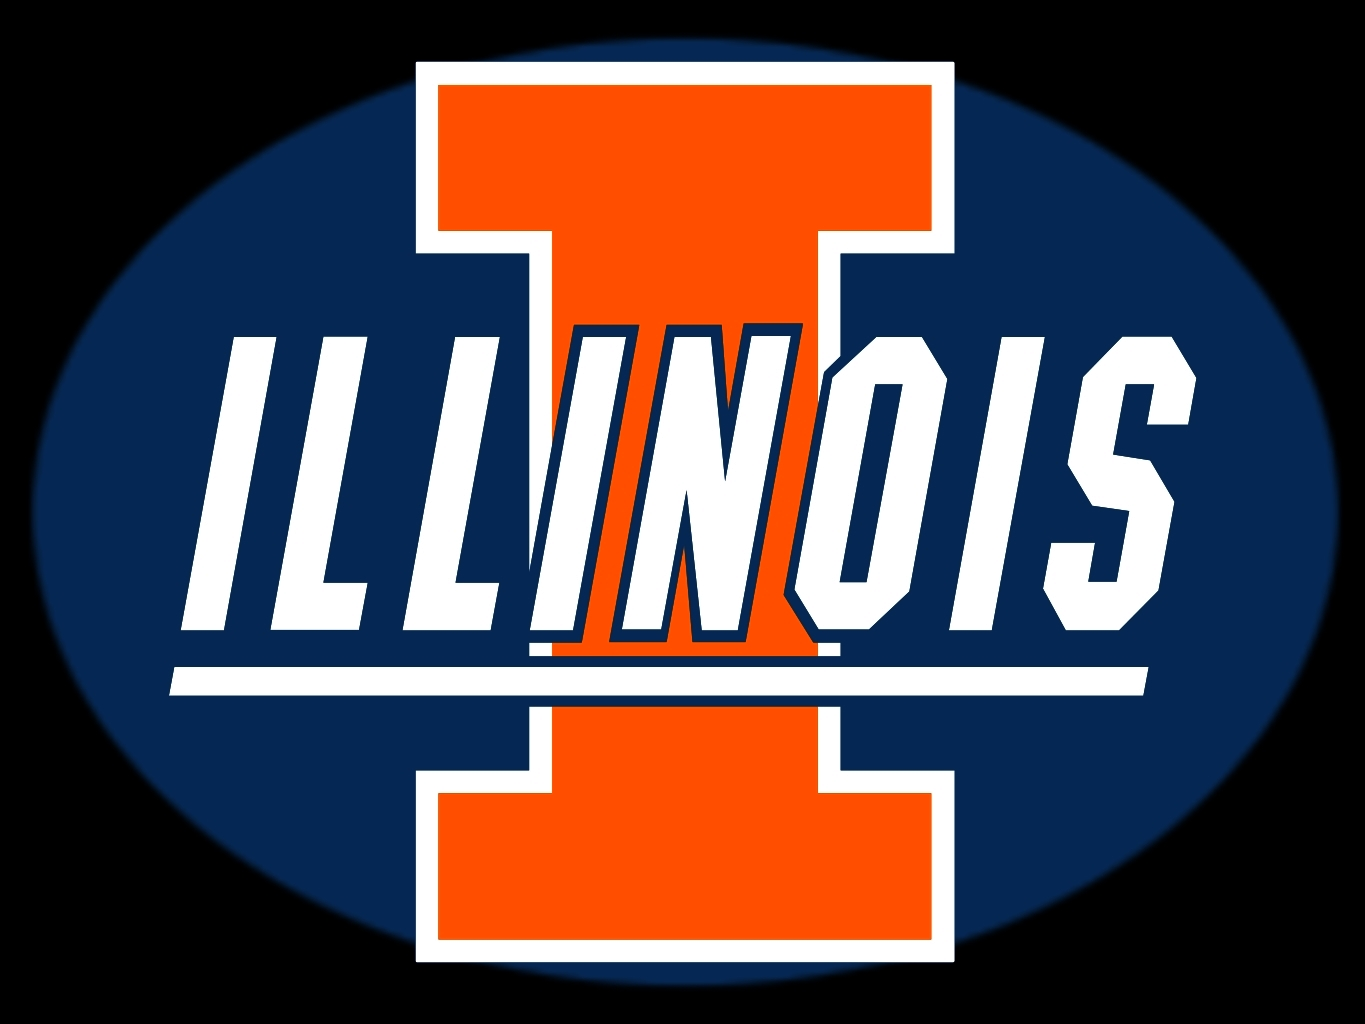 Illinois Fighting Illini Wallpaper 1365x1024